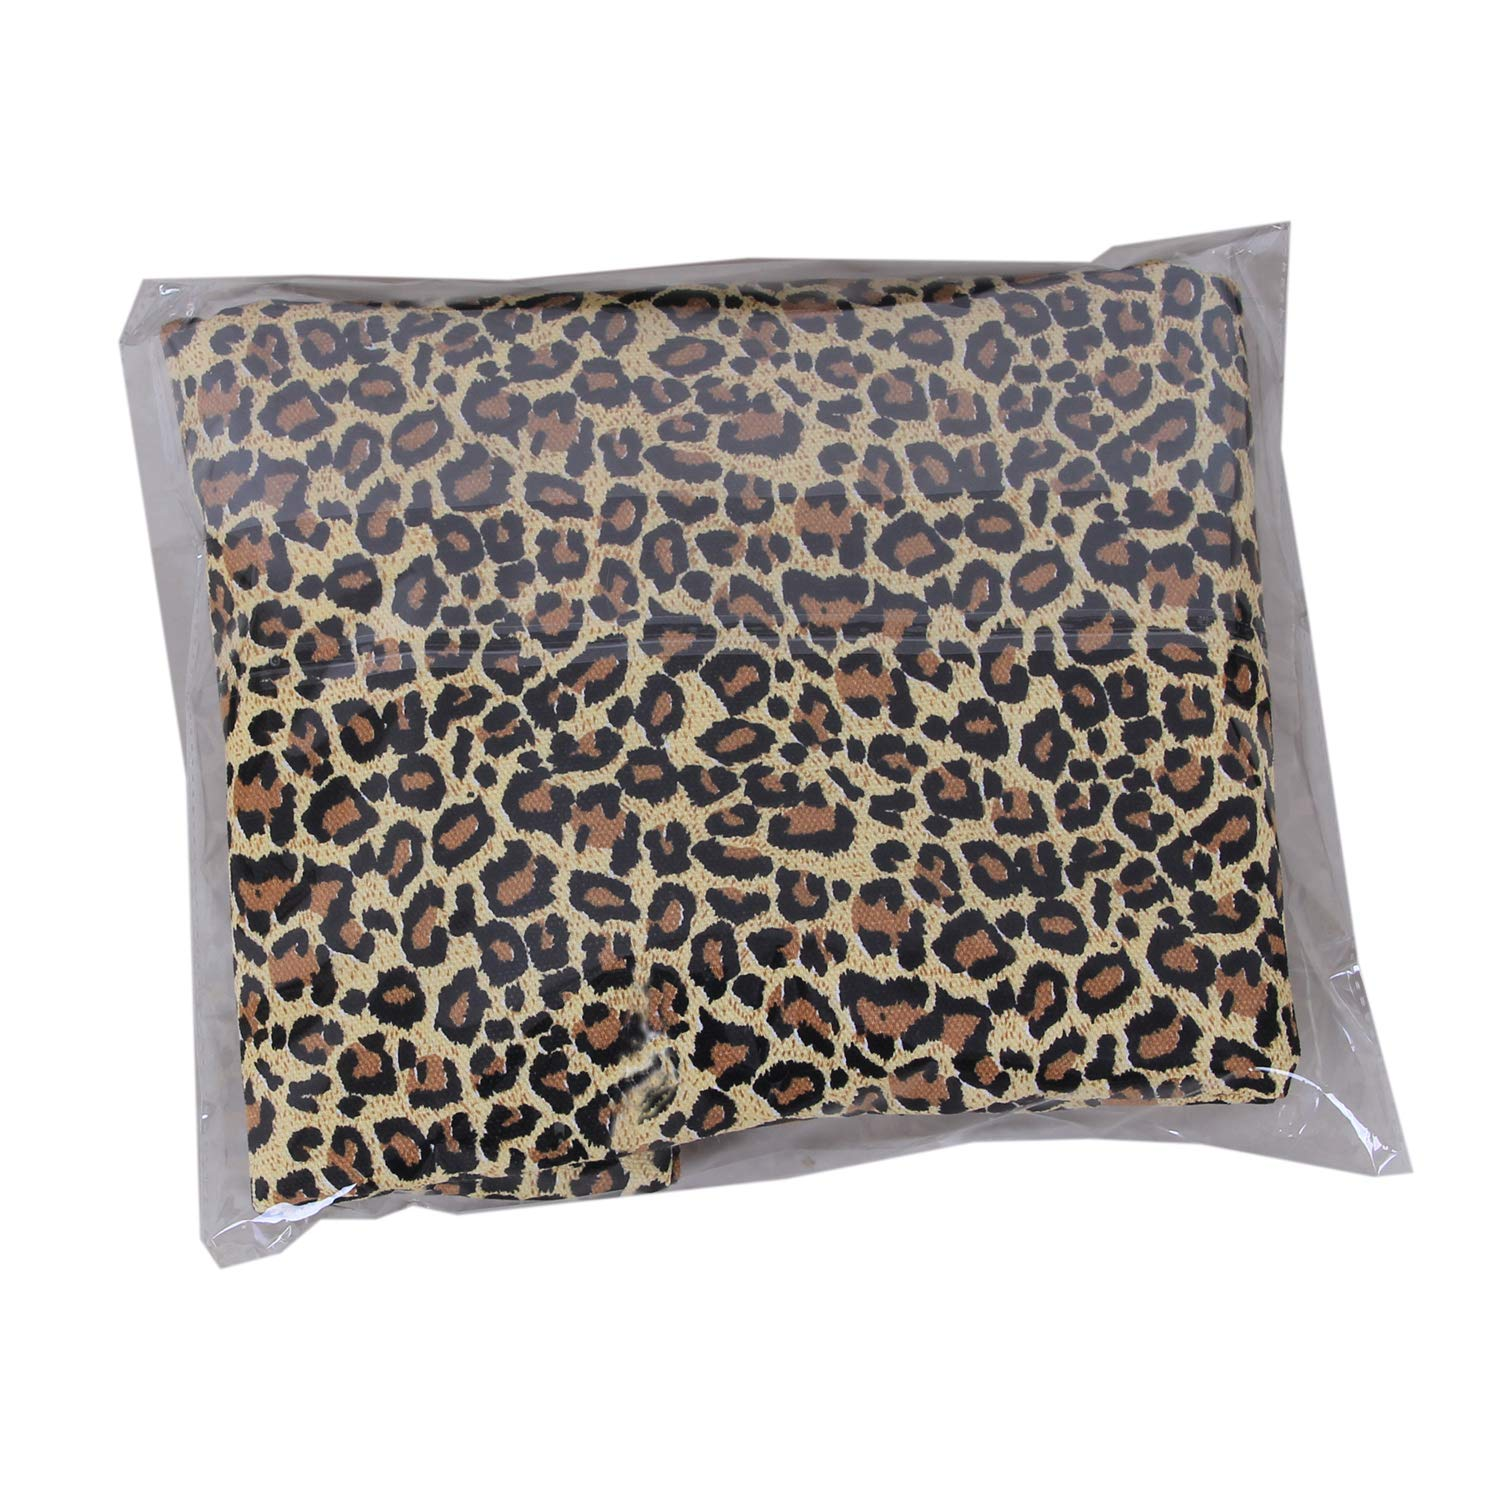 Childrens Plush Soft Toy Storage Bag Bean Bag Large Perfect Storage Solution Chair Easy Clear Leopard Print,18In